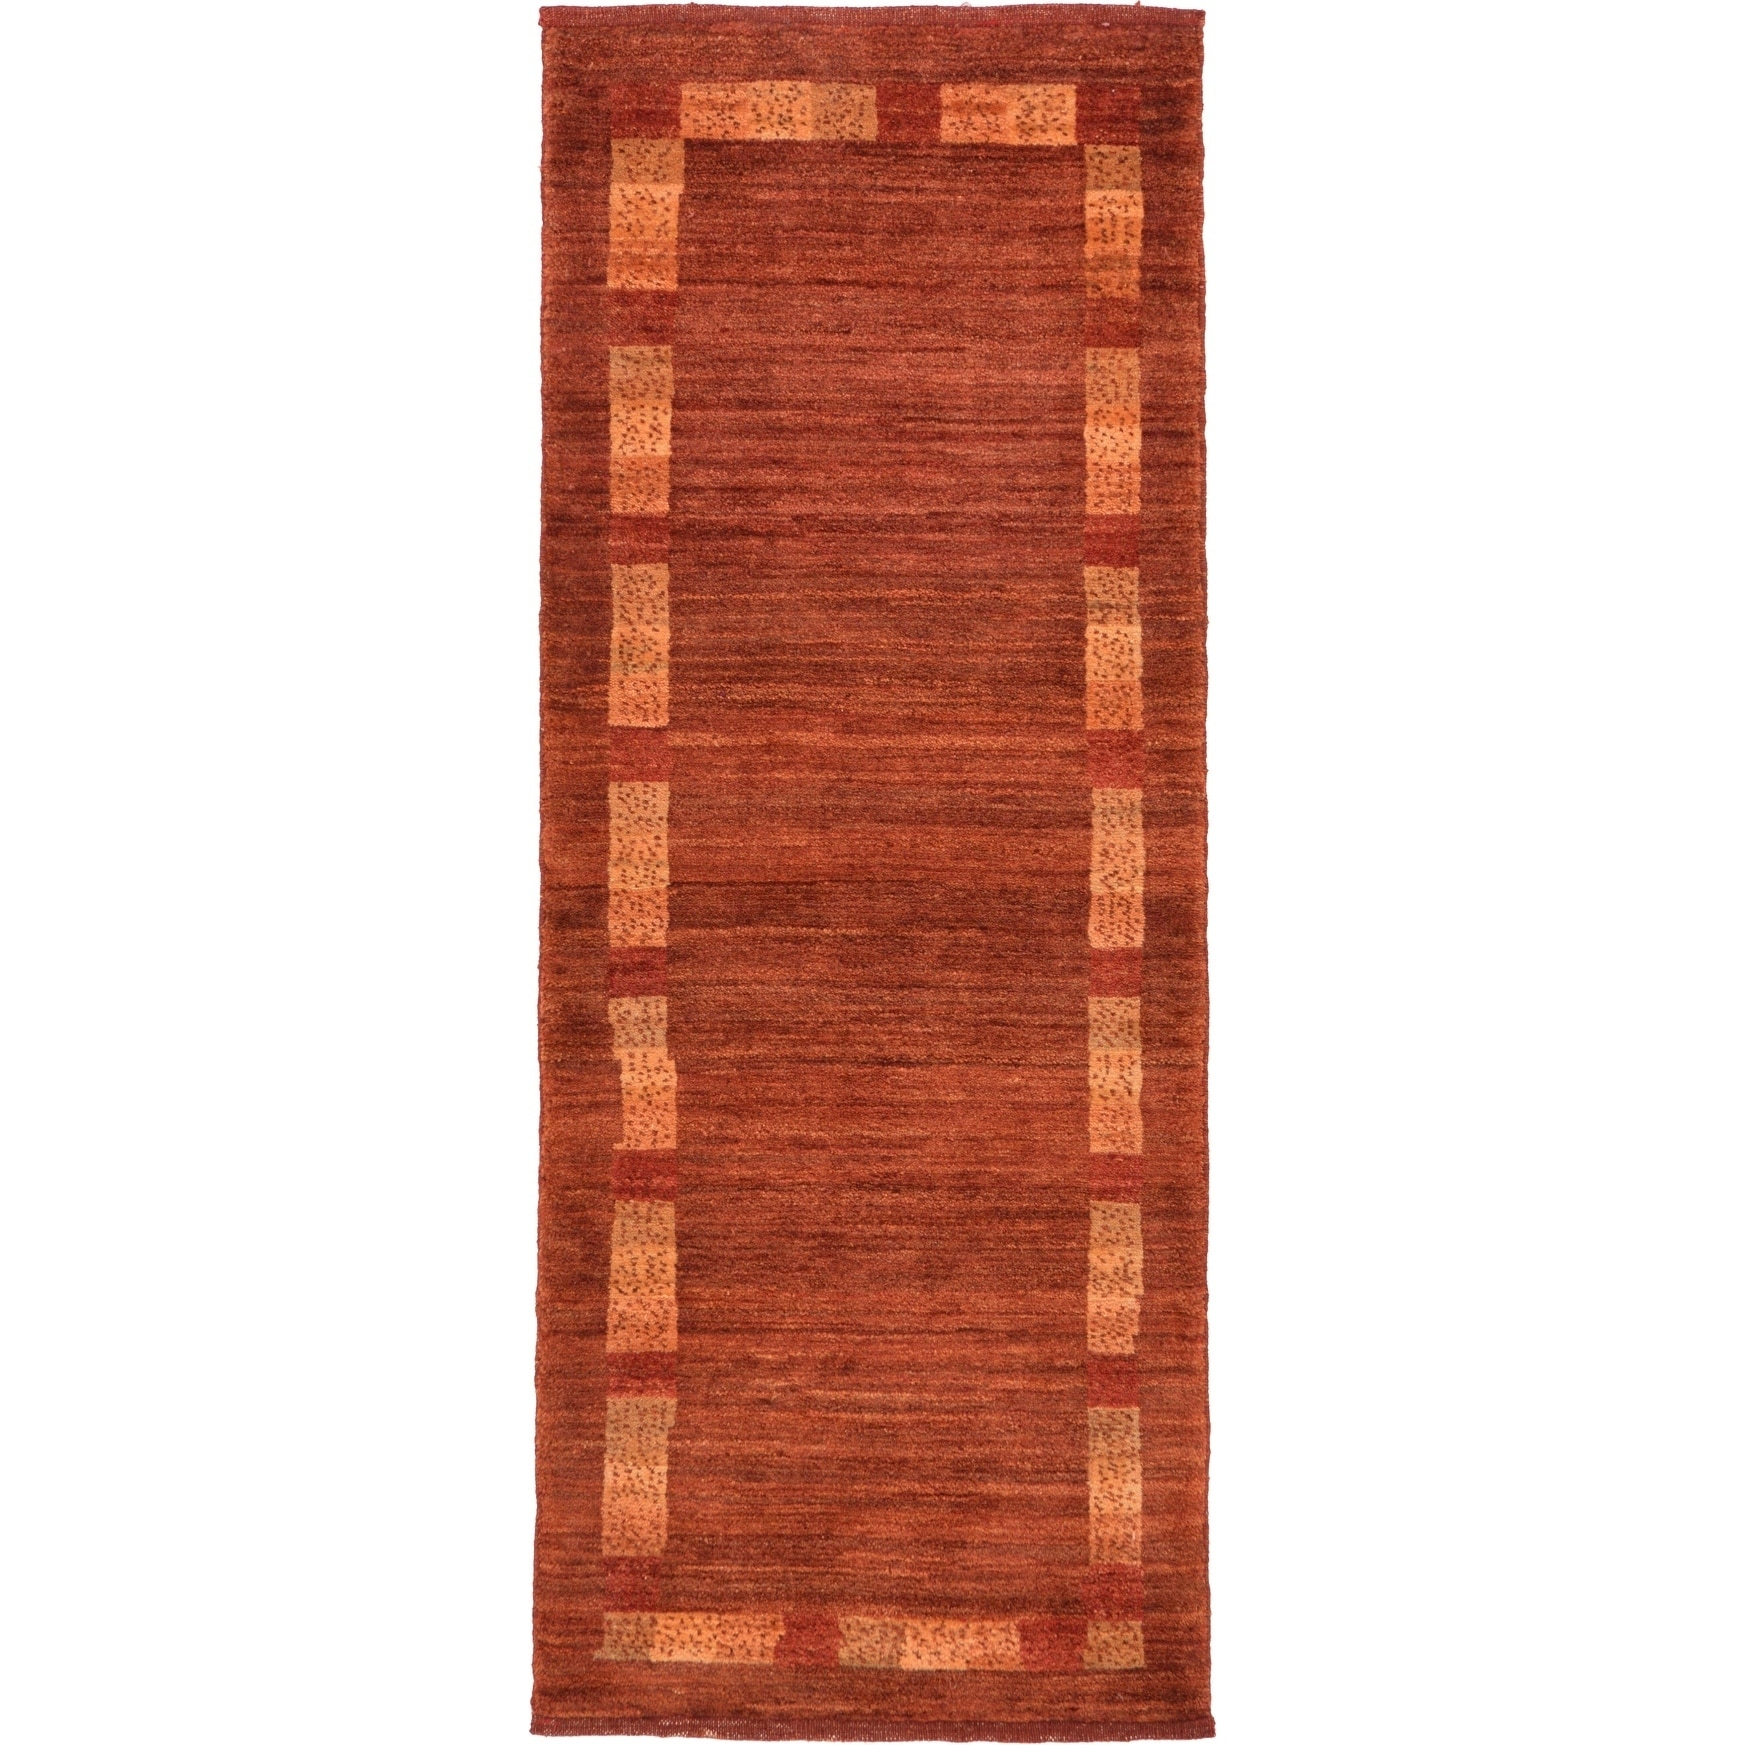 Hand Knotted Kashkuli Gabbeh Wool Runner Rug - 1 10 x 4 8 (Rust Red - 1 10 x 4 8)